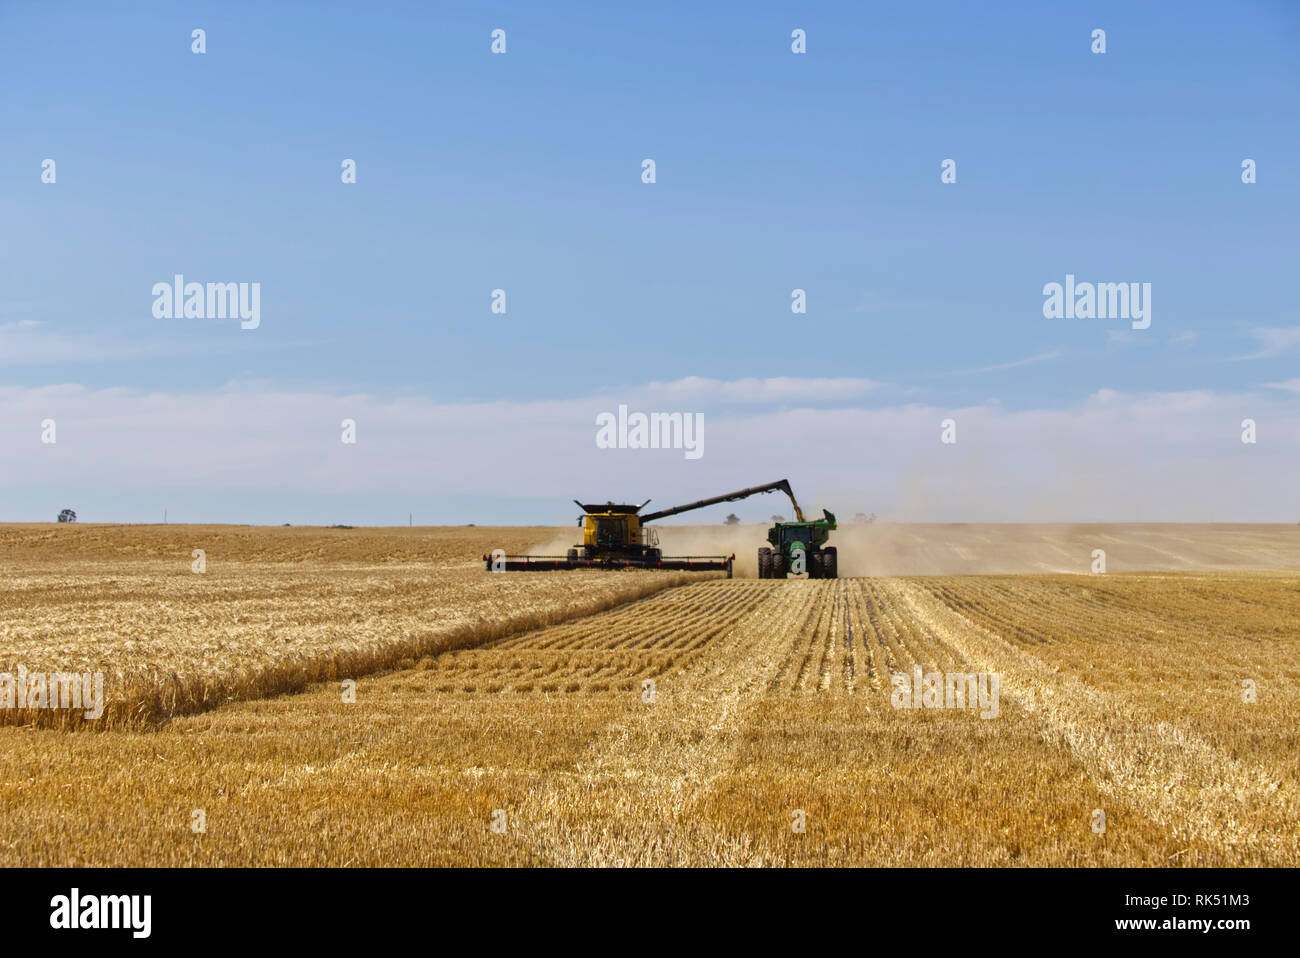 Barley harvesting with modern wide comb combine harvester (New Holland) and tractor bin chaser near Lock Eyre Peninsula South Australia - Stock Image